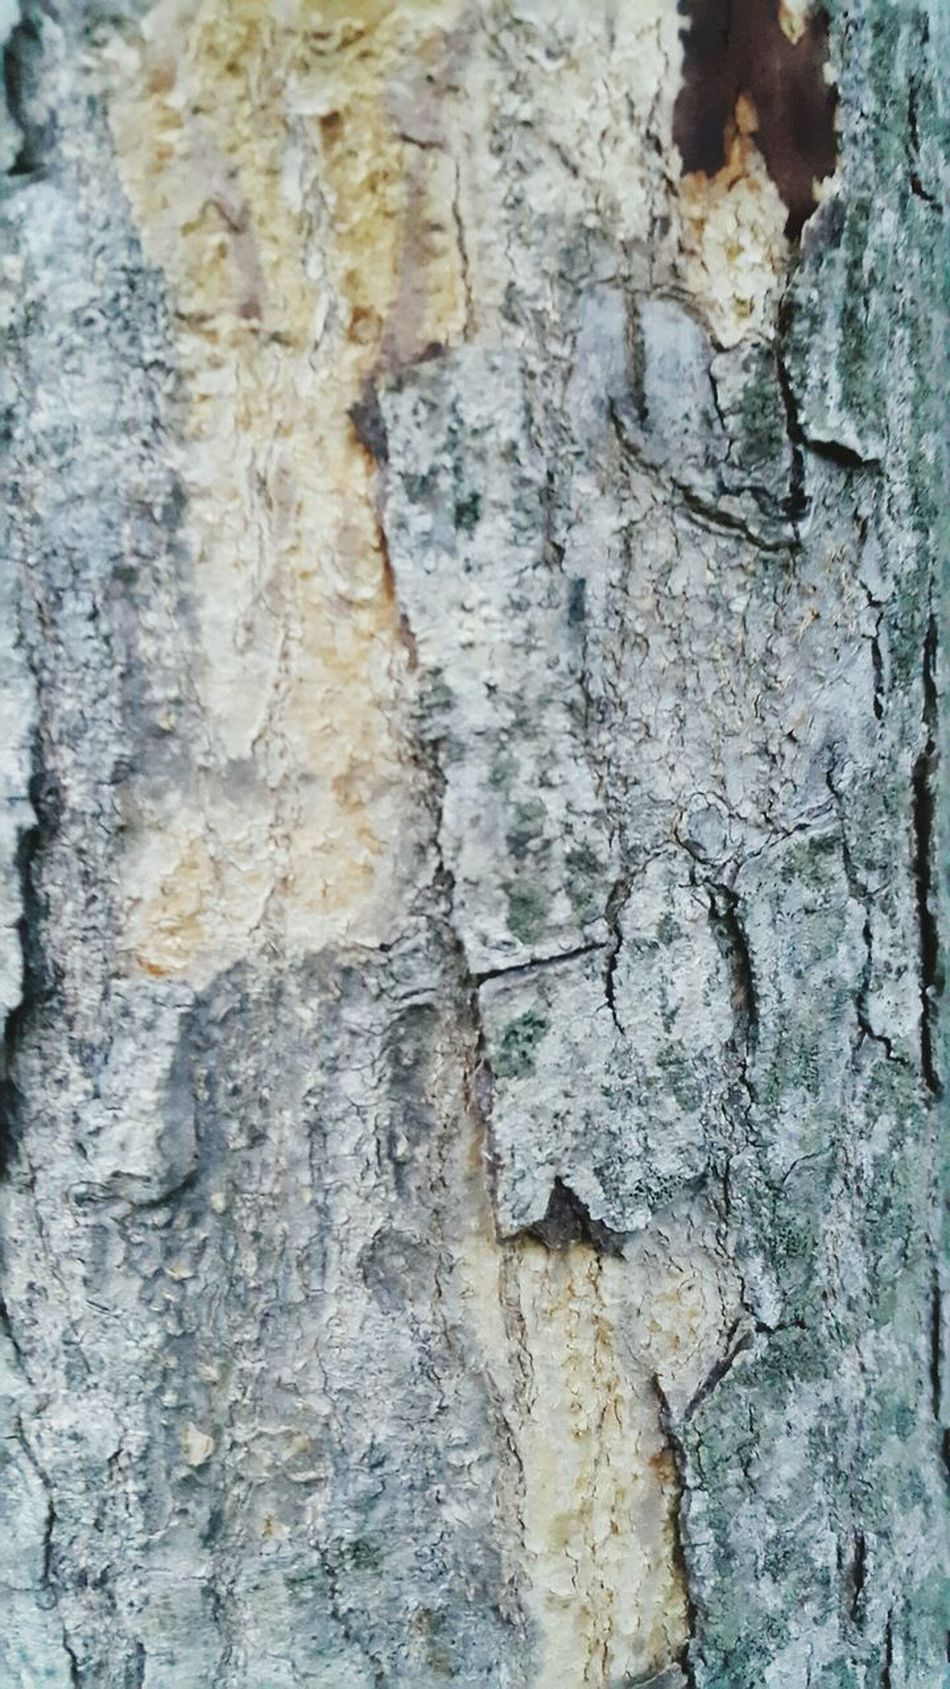 Textured  Full Frame Backgrounds Rough No People Day Close-up Pattern Outdoors Architecture Bolt Nut Bark Wood Surface Wood - Material Wood